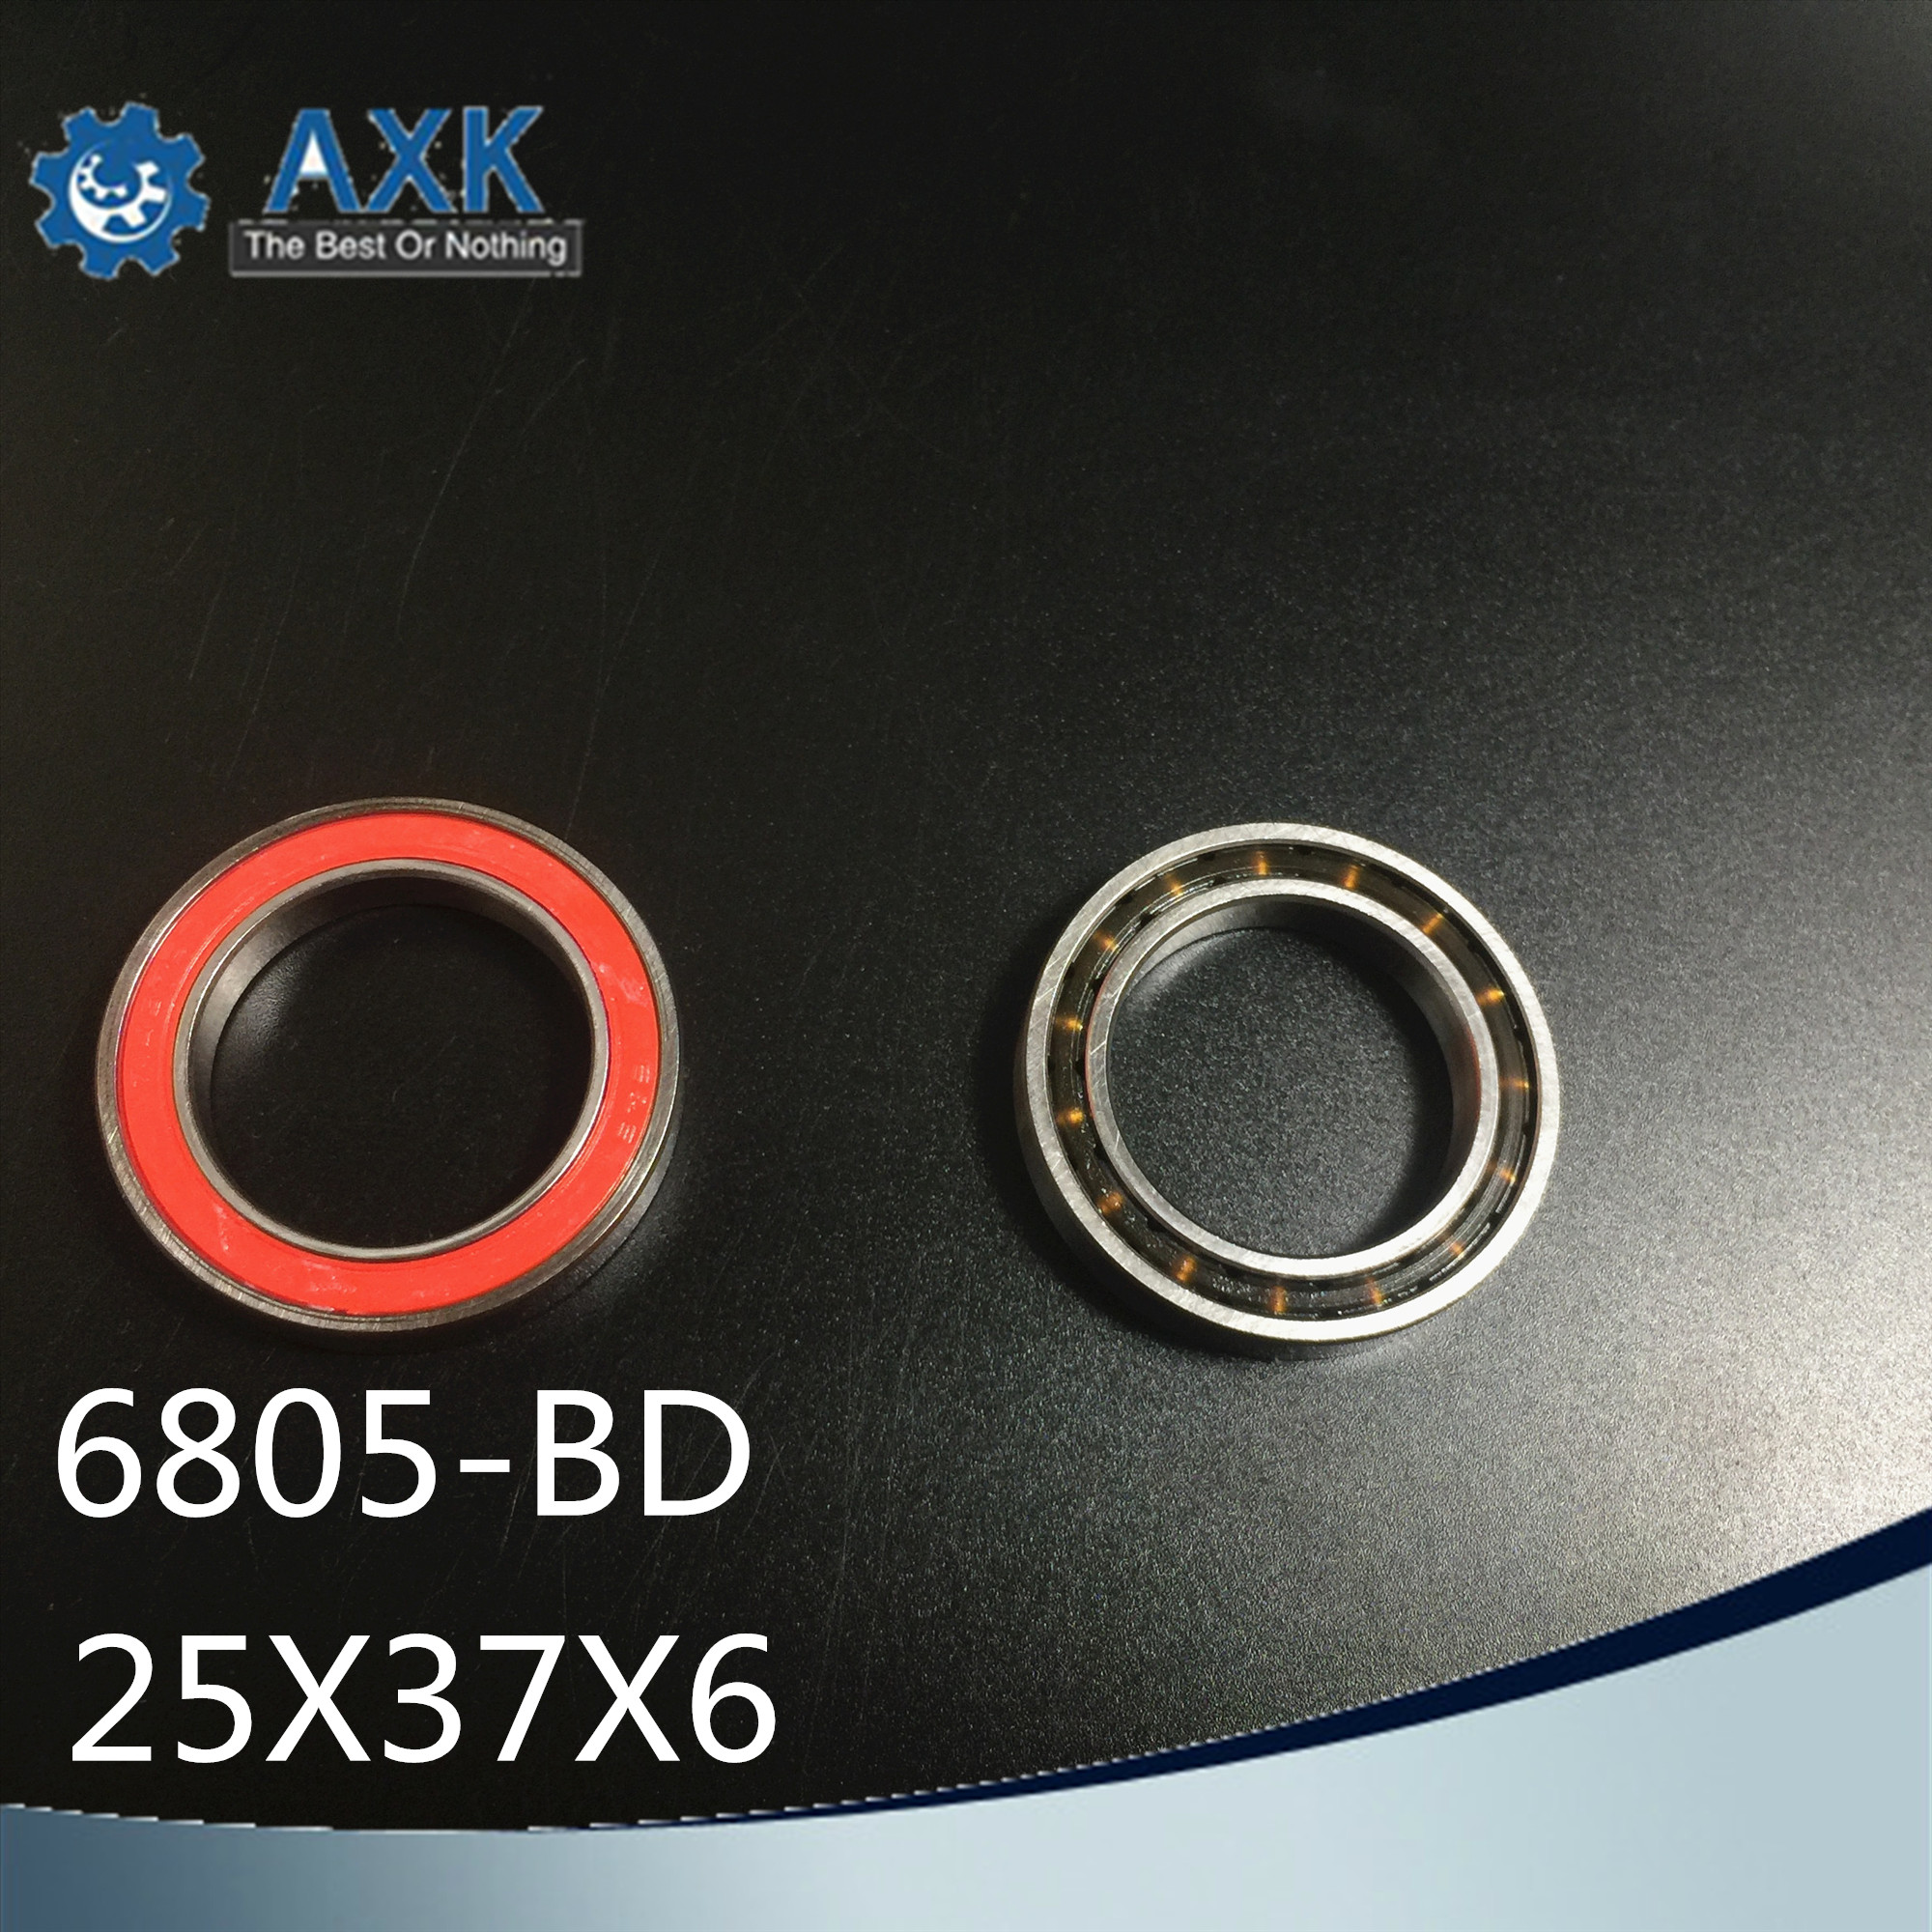 <font><b>6805</b></font>-RD Bearing (4 Pcs) 25*37*6 mm 6805RD Dedicated Bike Bottom Bracket Bearings <font><b>6805</b></font> RD ( HT2 / BB51 ) MR25376 SC6805N <font><b>RS</b></font> image